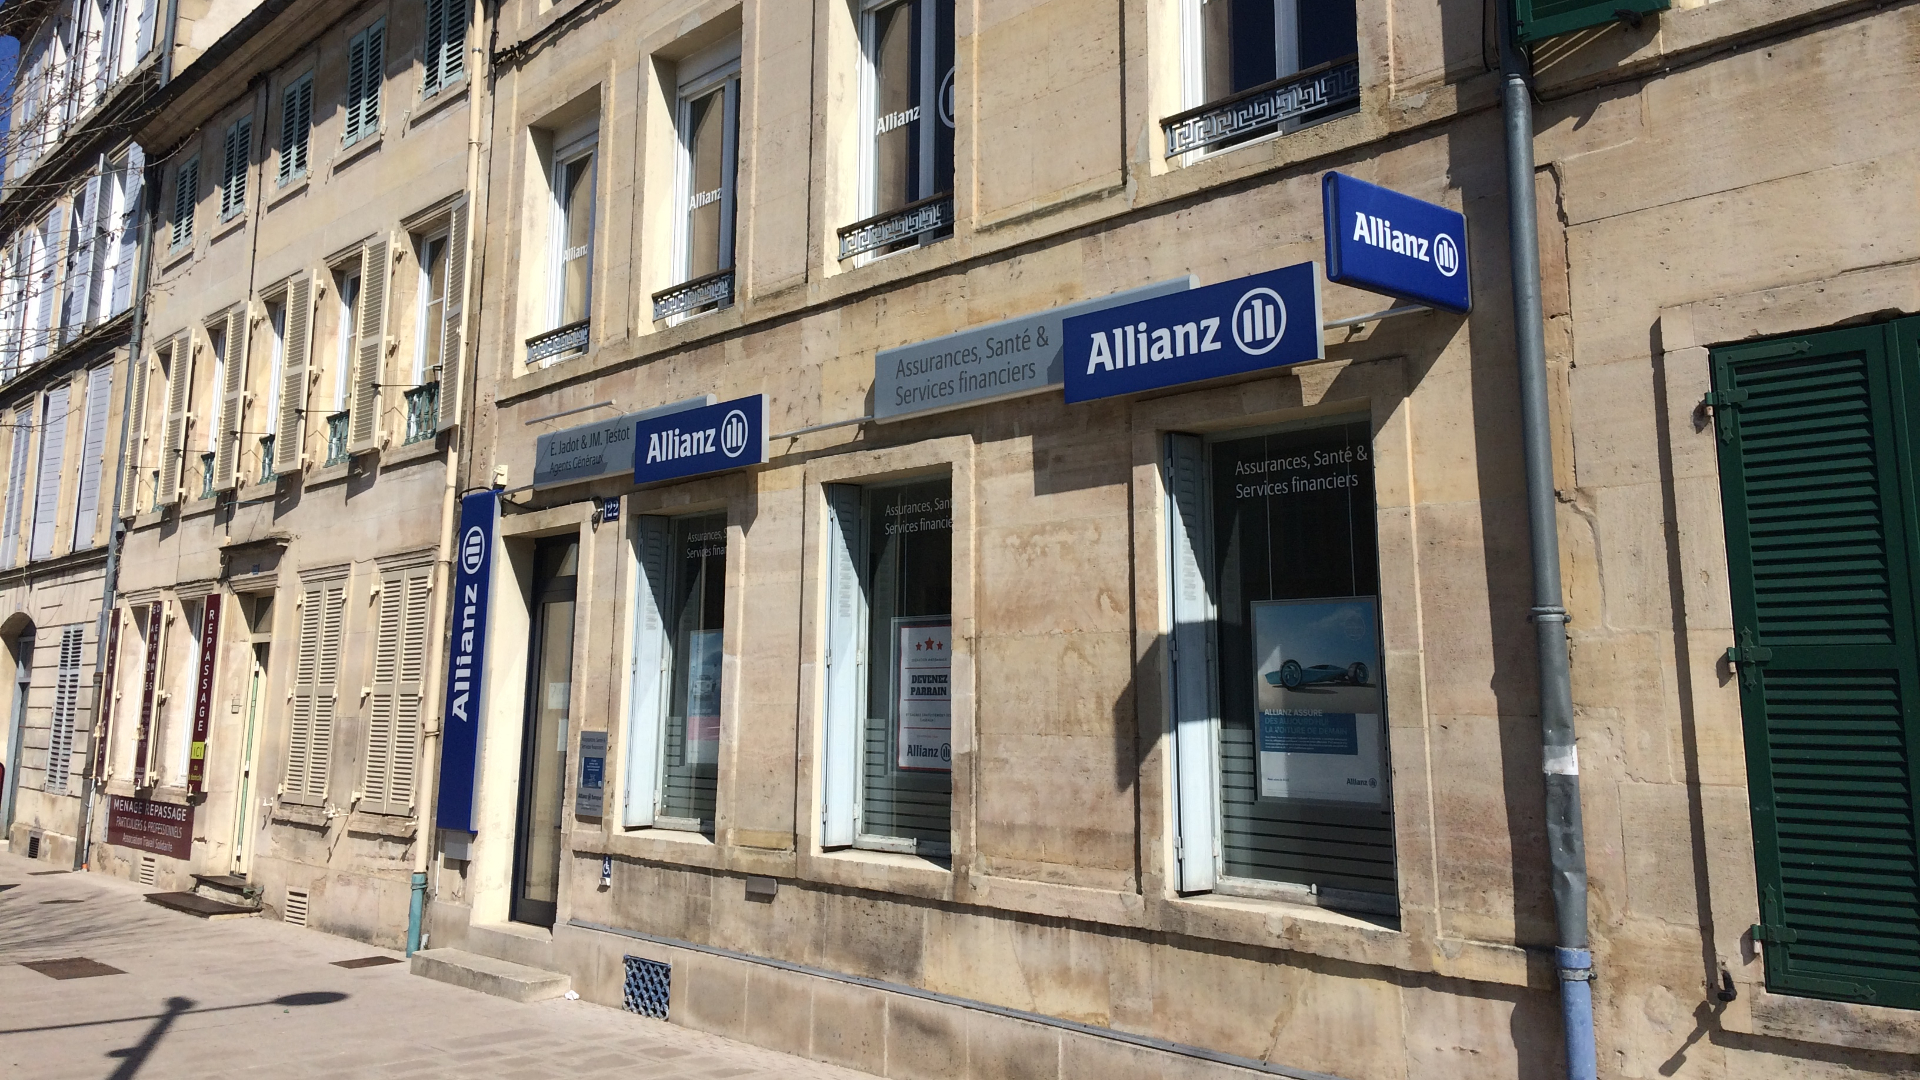 Allianz BAR LE DUC - JADOT & TESTOT & NONY